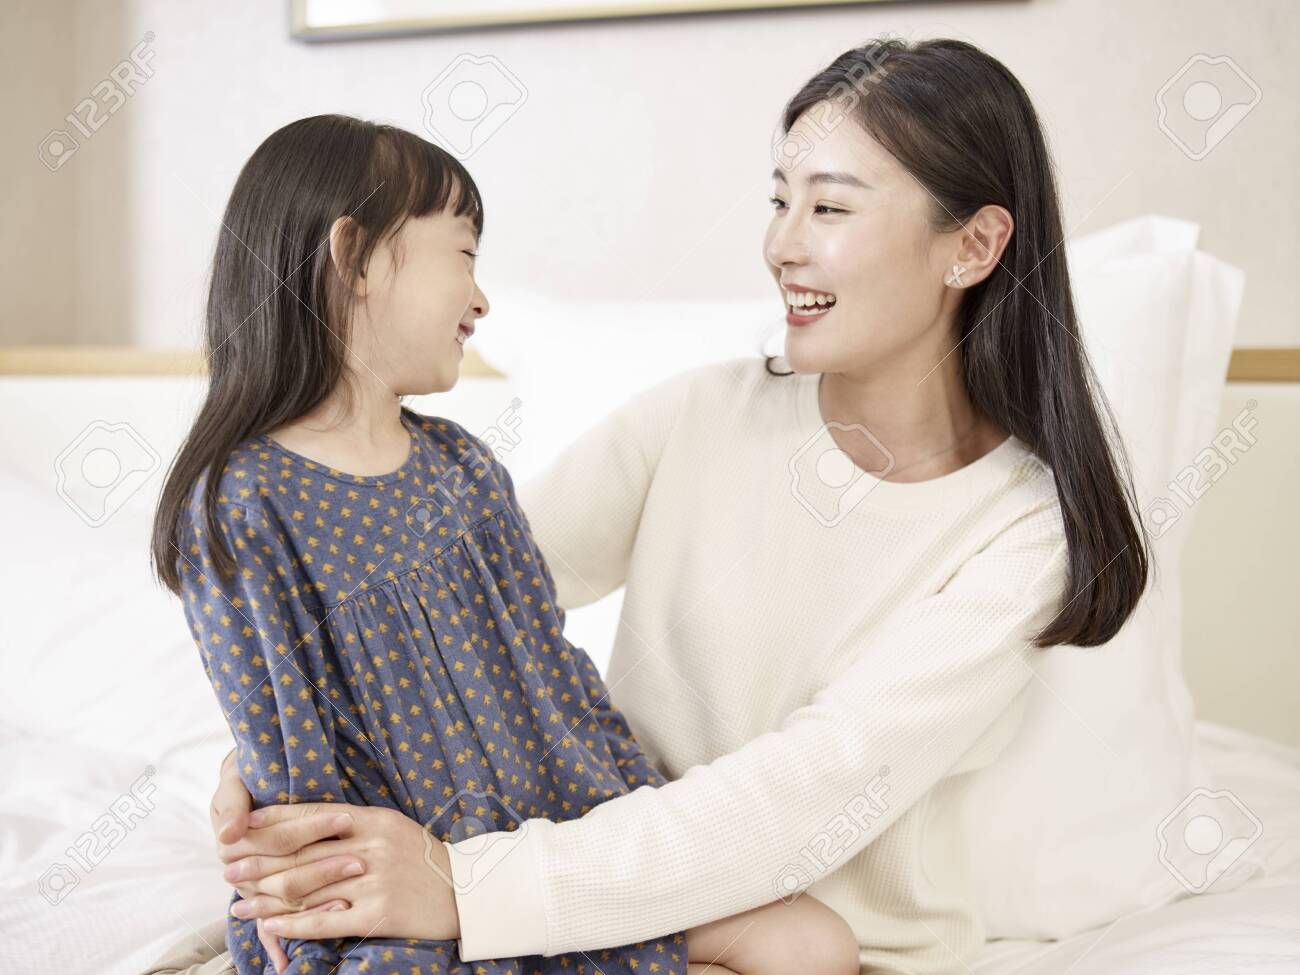 young asian mother and elementary age daughter sitting in bed relaxing playing chatting at home - 146178444